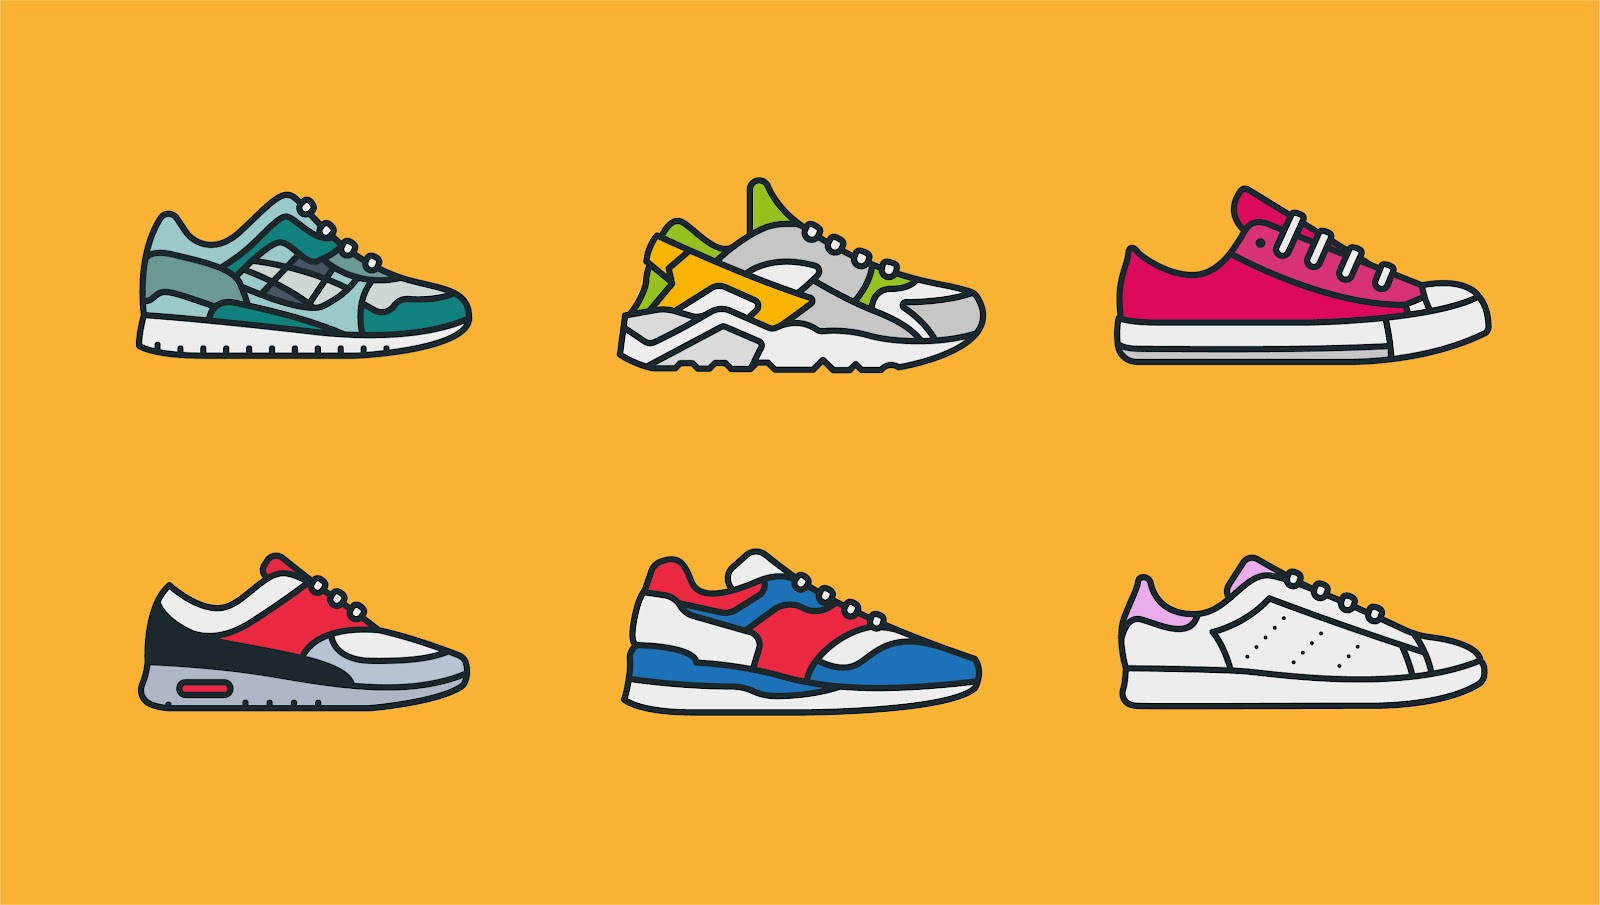 illustration of sneakers